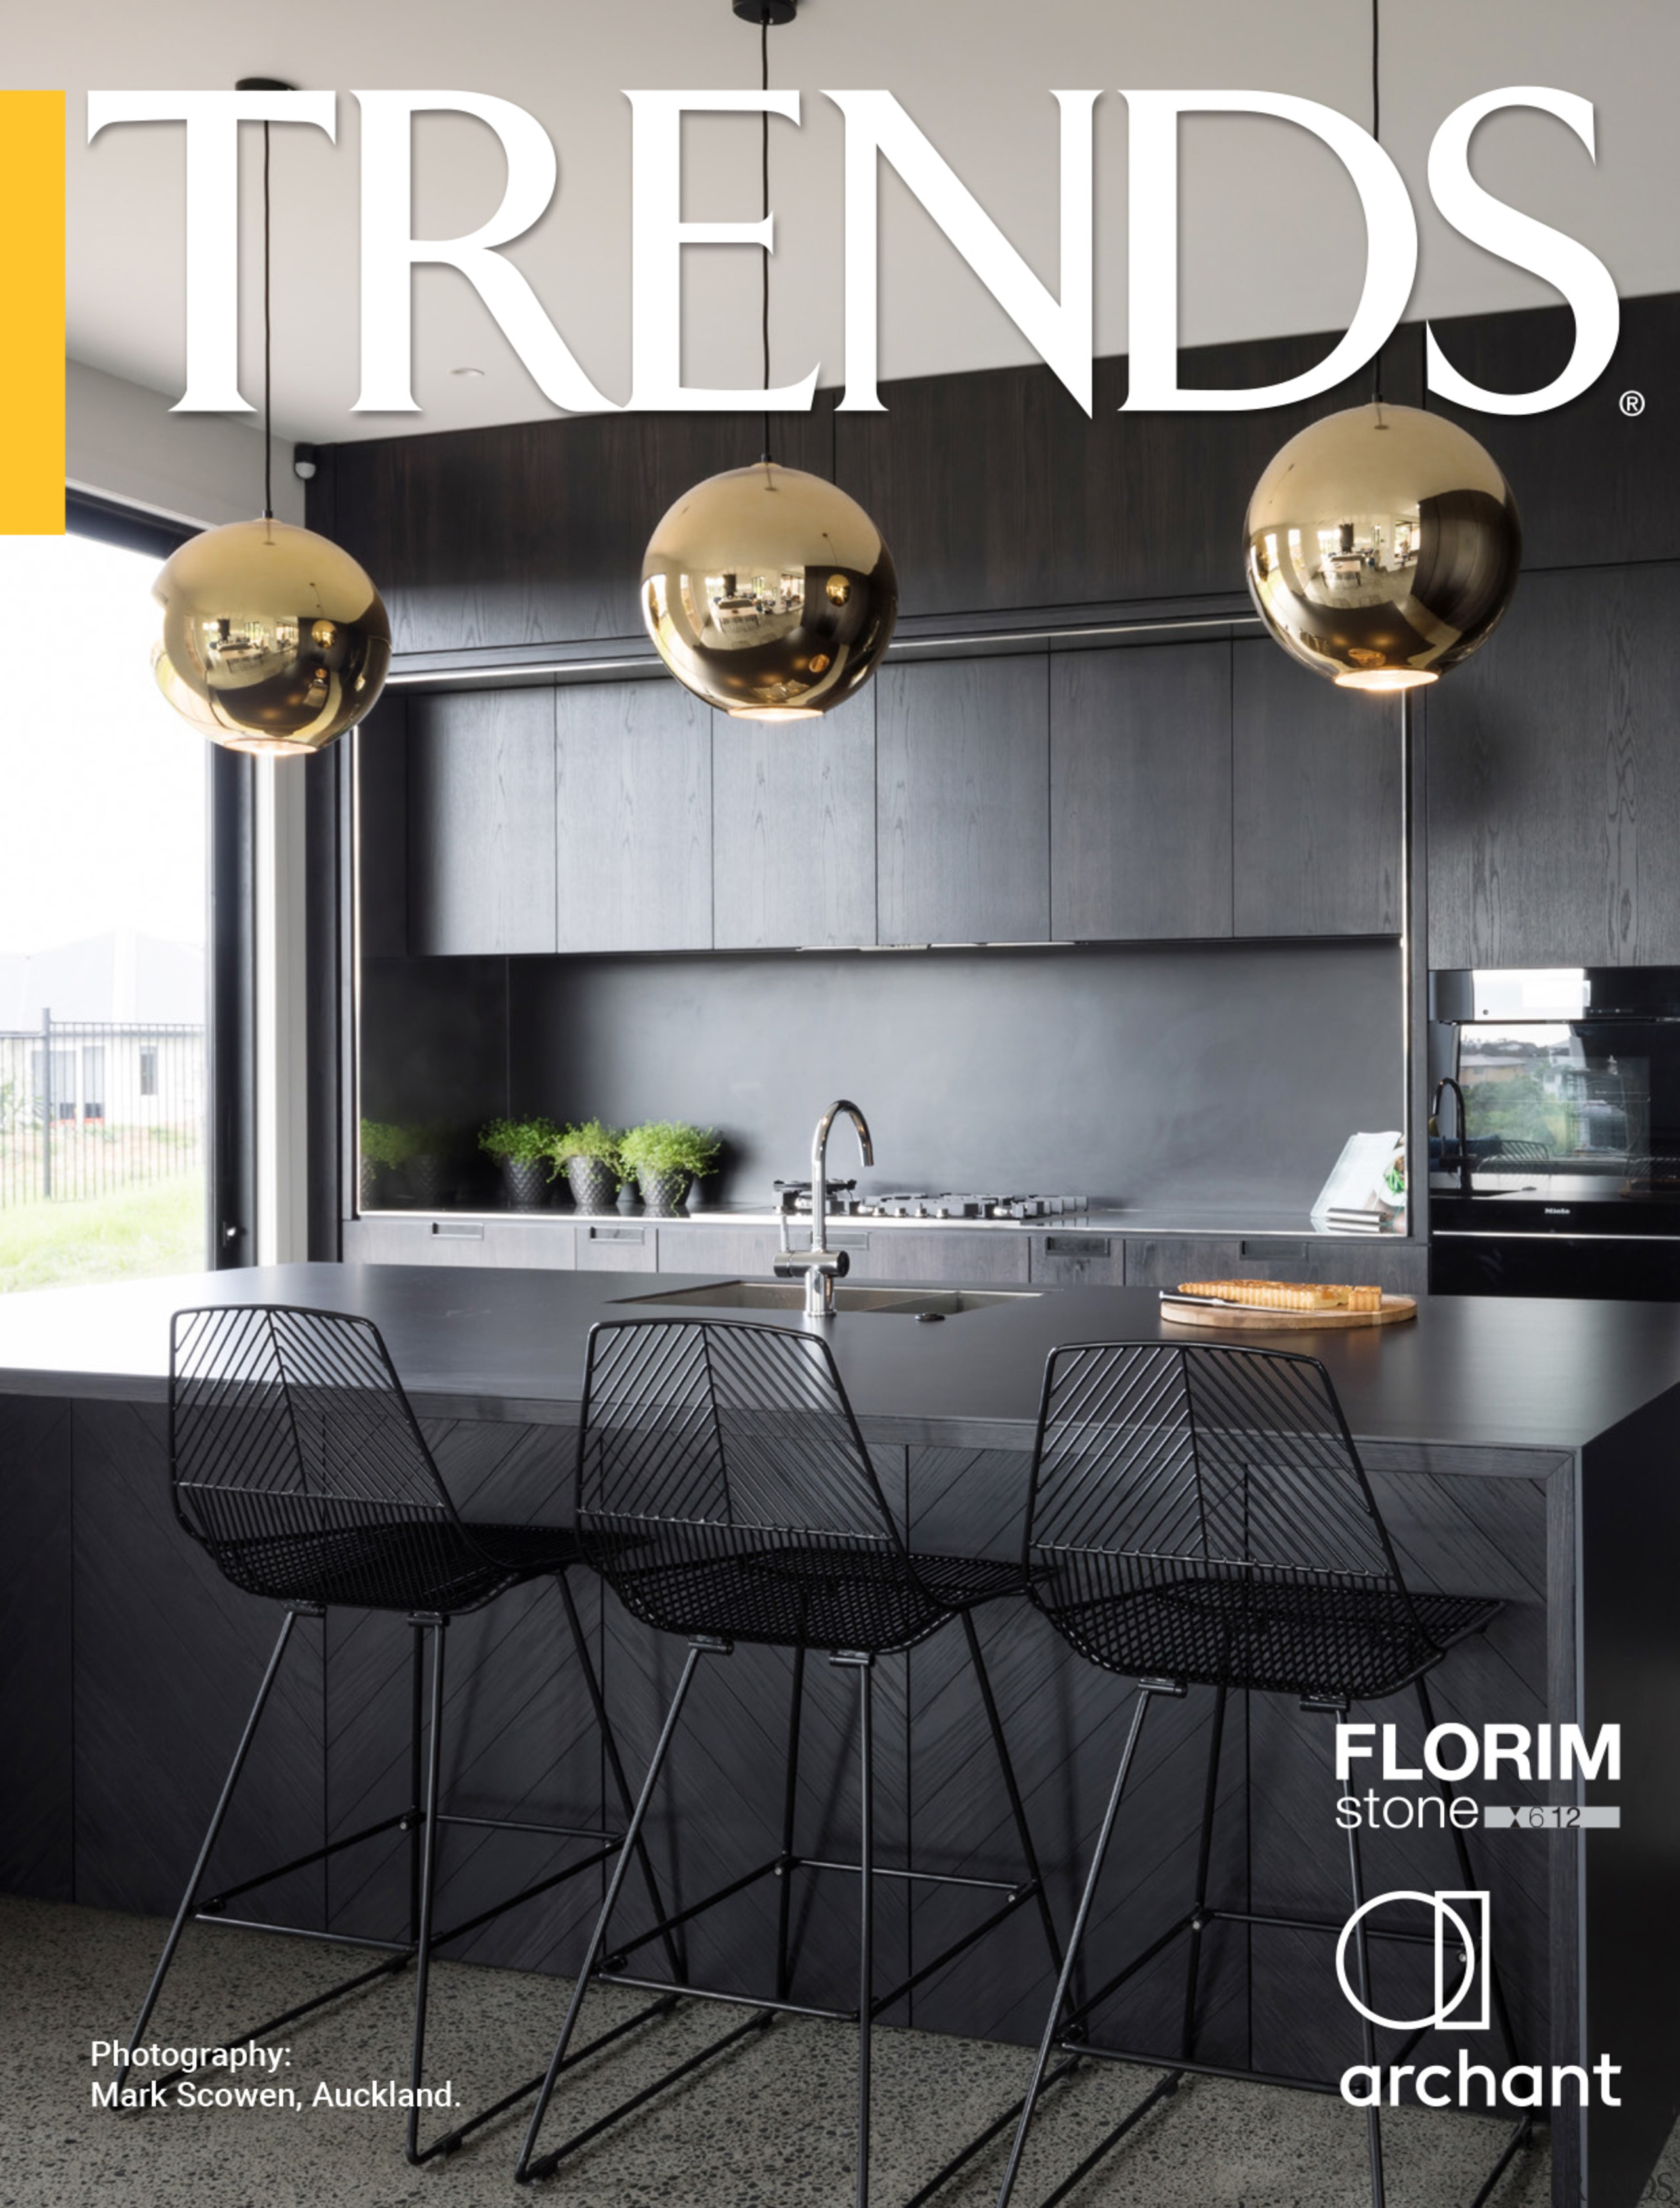 Nz3406 Archantcover Ebook - flooring | furniture | flooring, furniture, interior design, kitchen, table, wall, black, gray